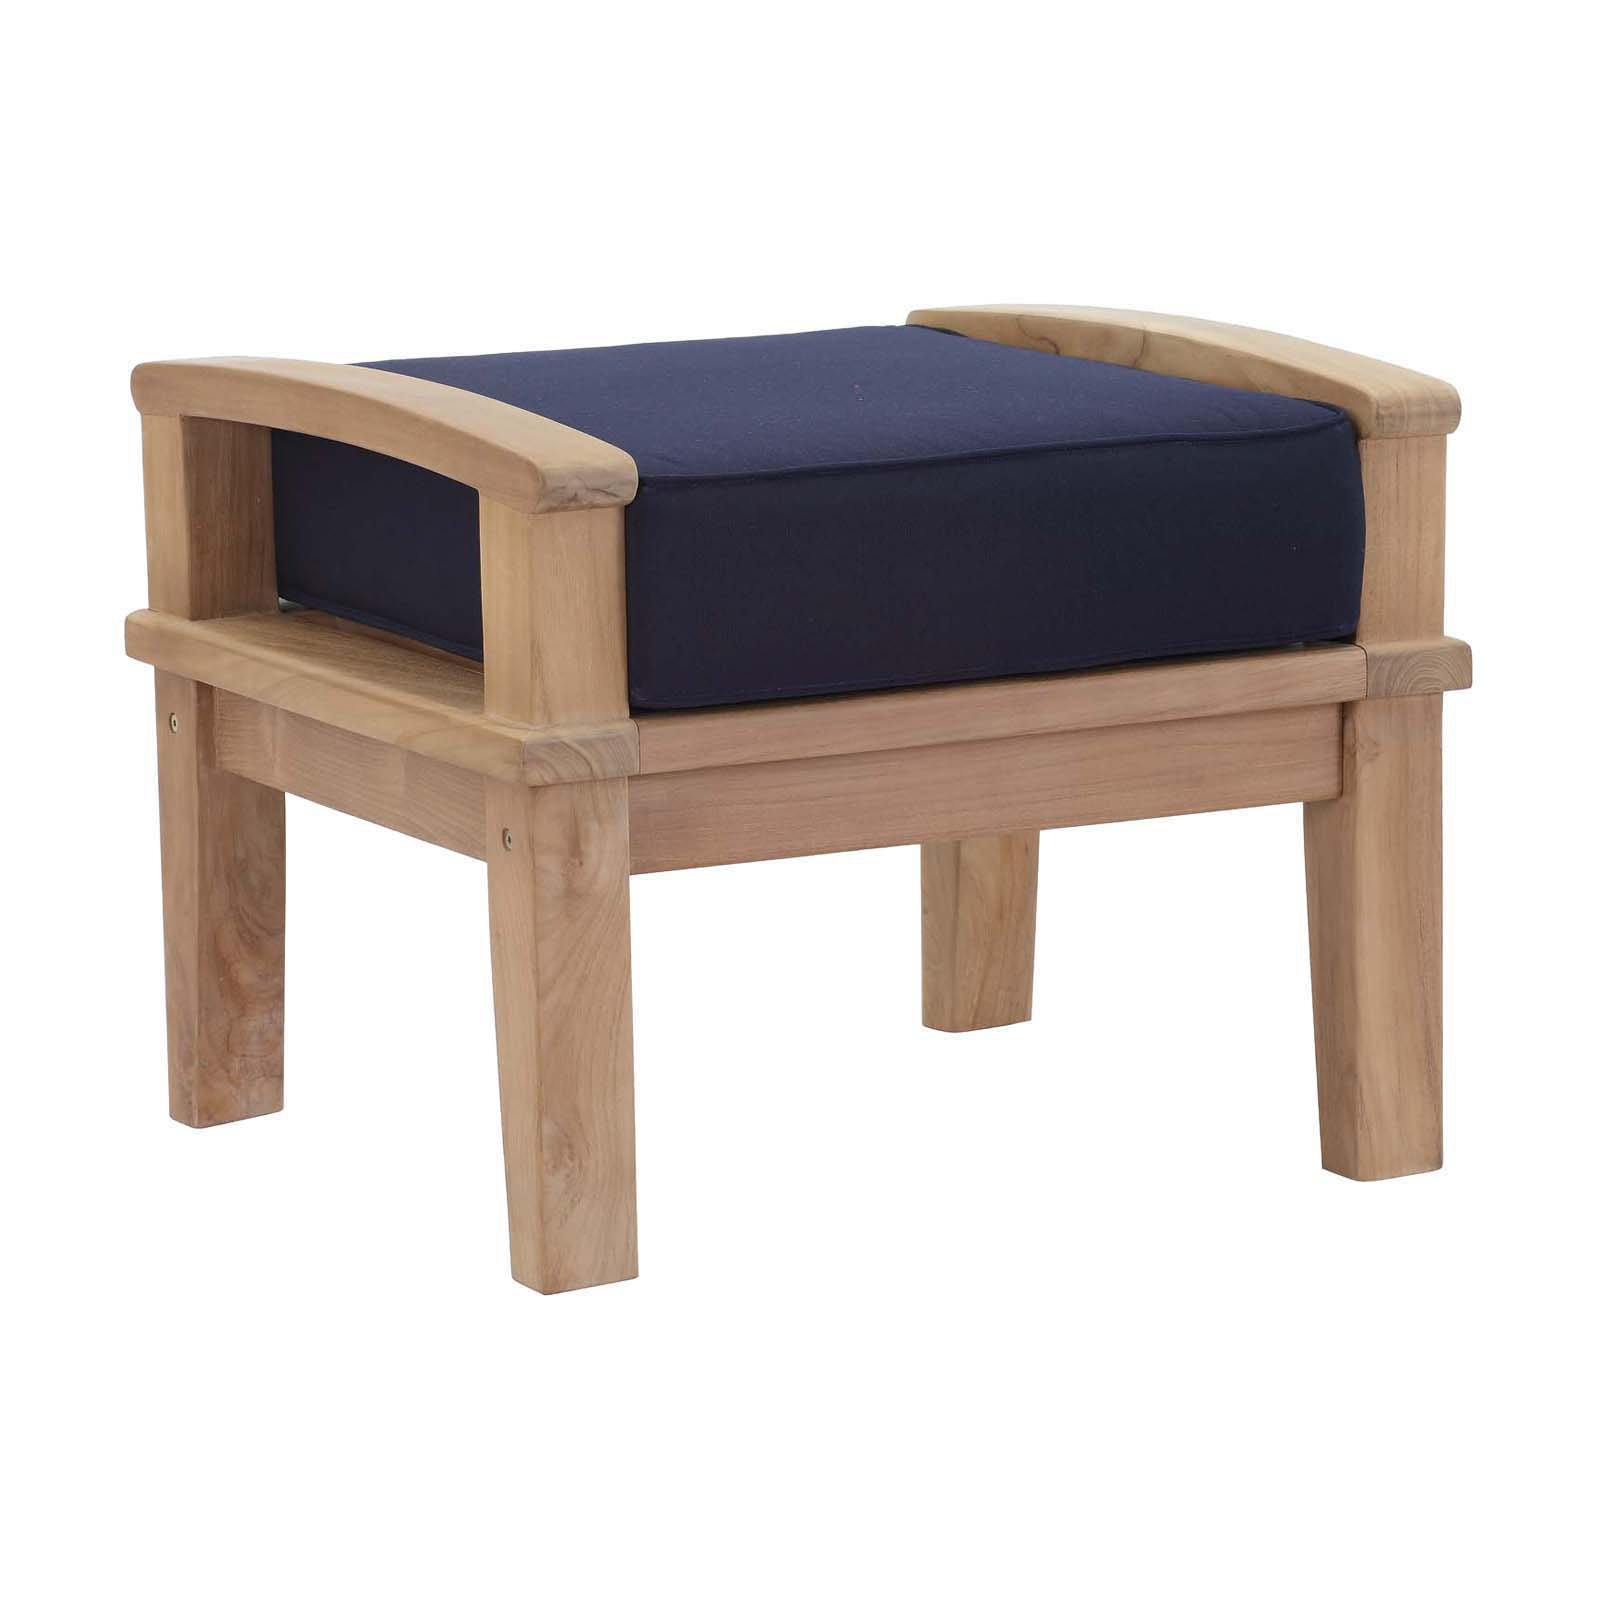 Modway Marina Outdoor Patio Teak Ottoman, Multiple Colors